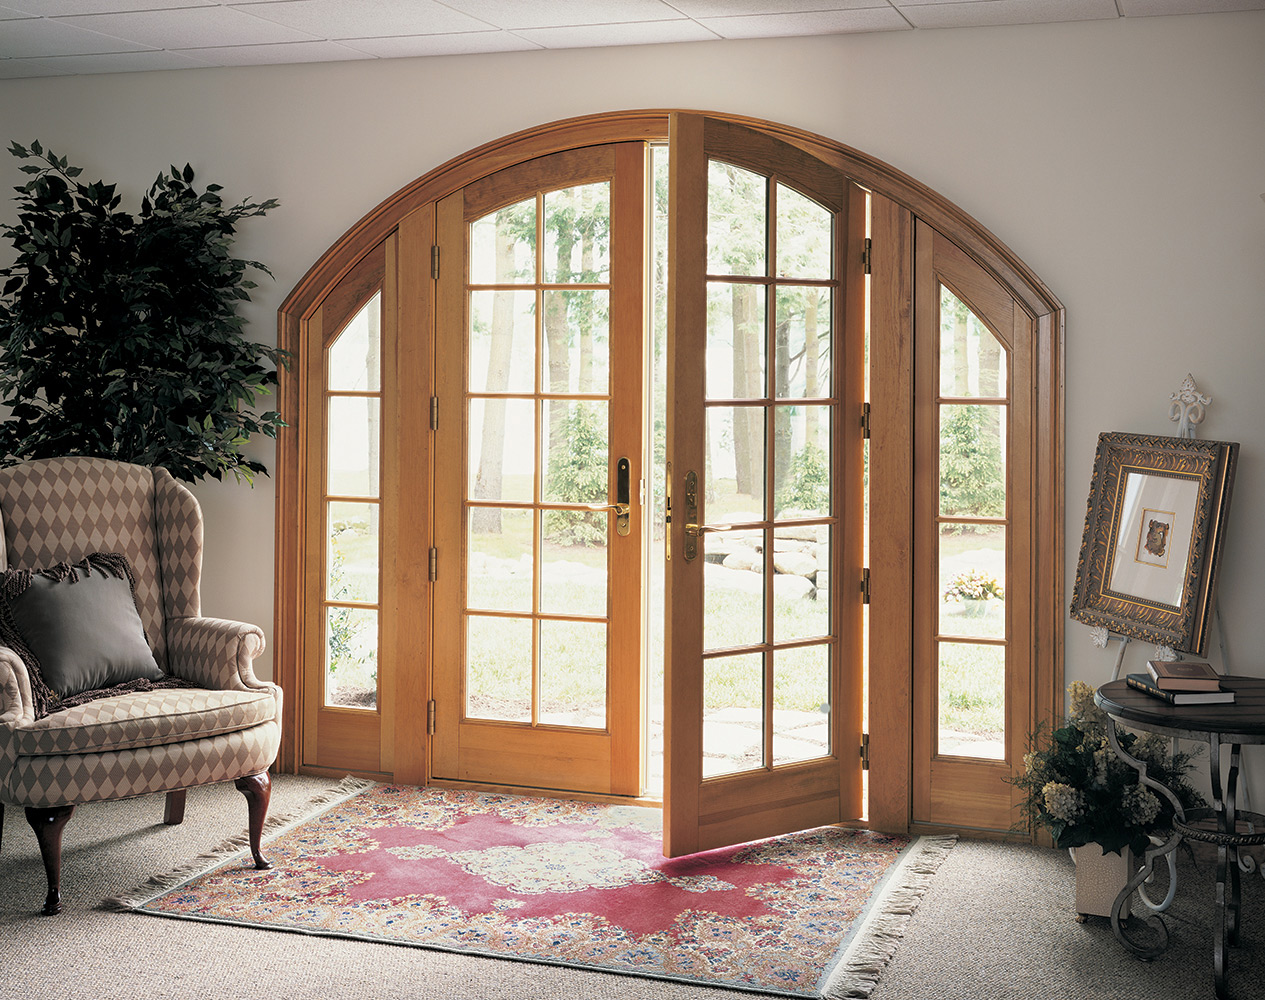 Replacement patio doors wisconsin hometowne windows for Patio doors with windows that open